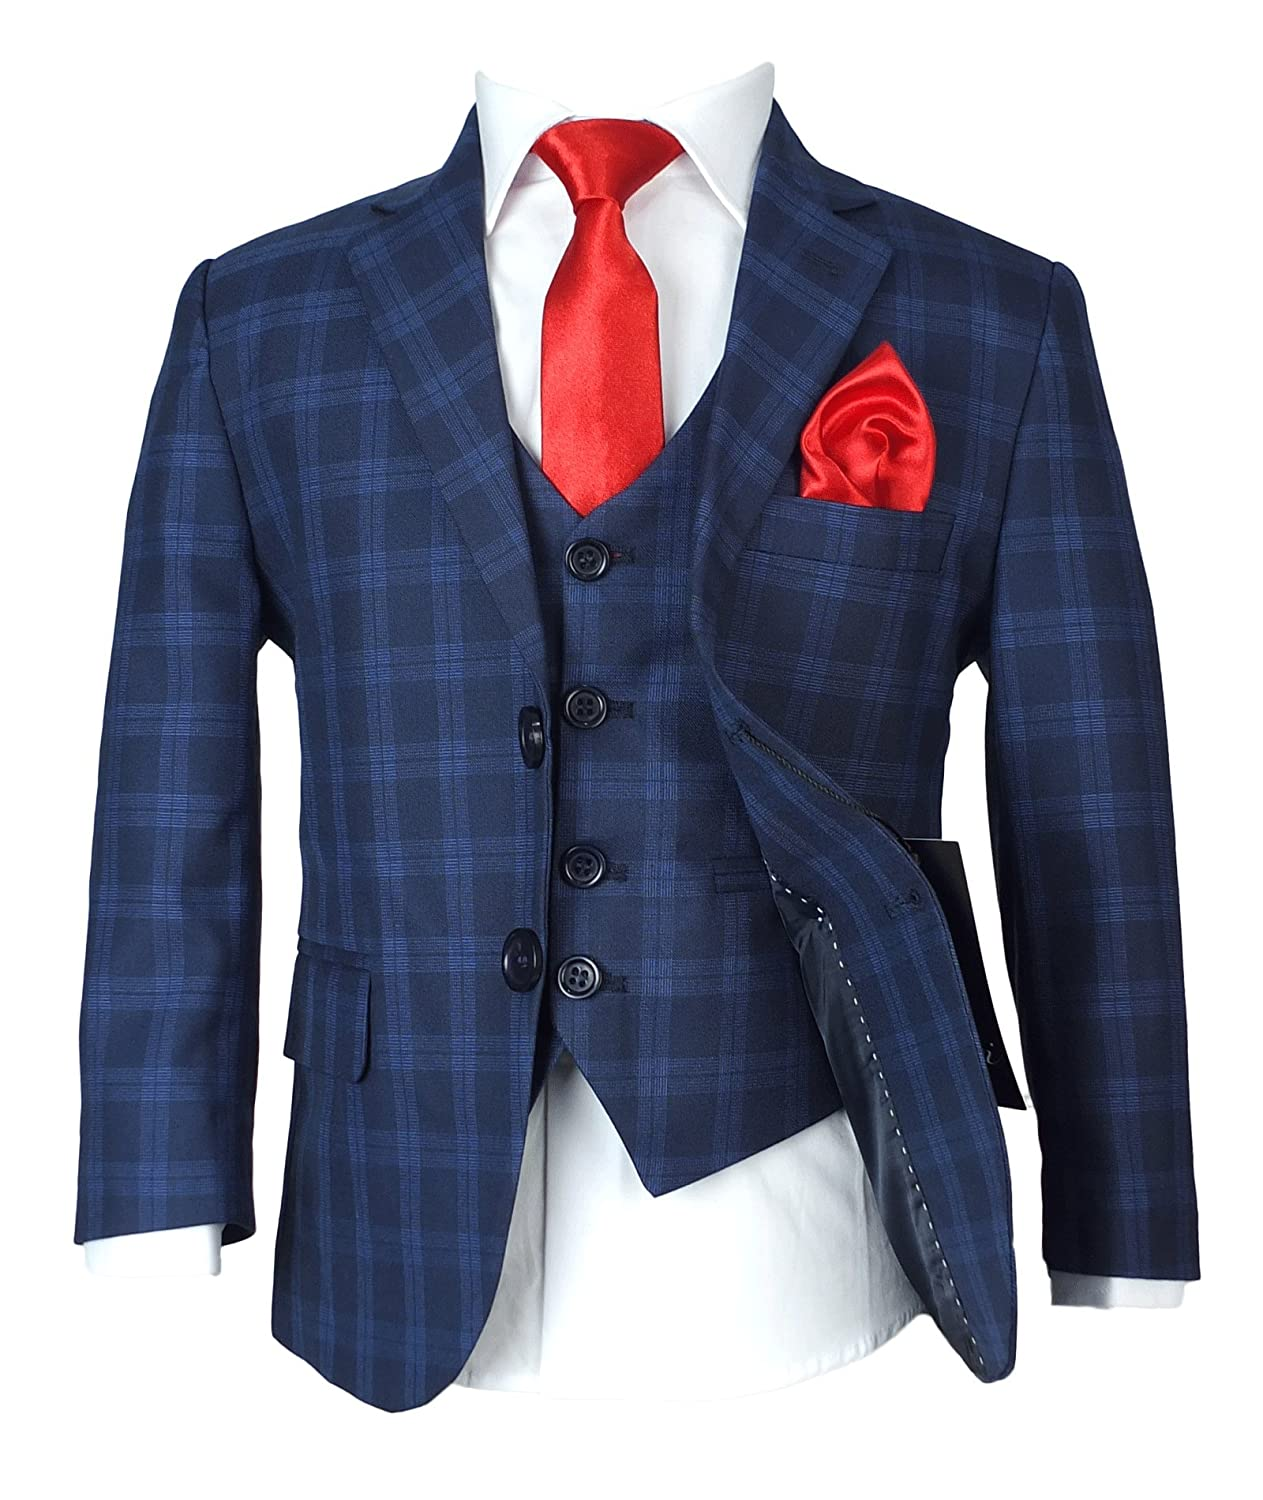 Boys Navy and Royal Blue Checkered Suit, Pageboy Formal Outfit